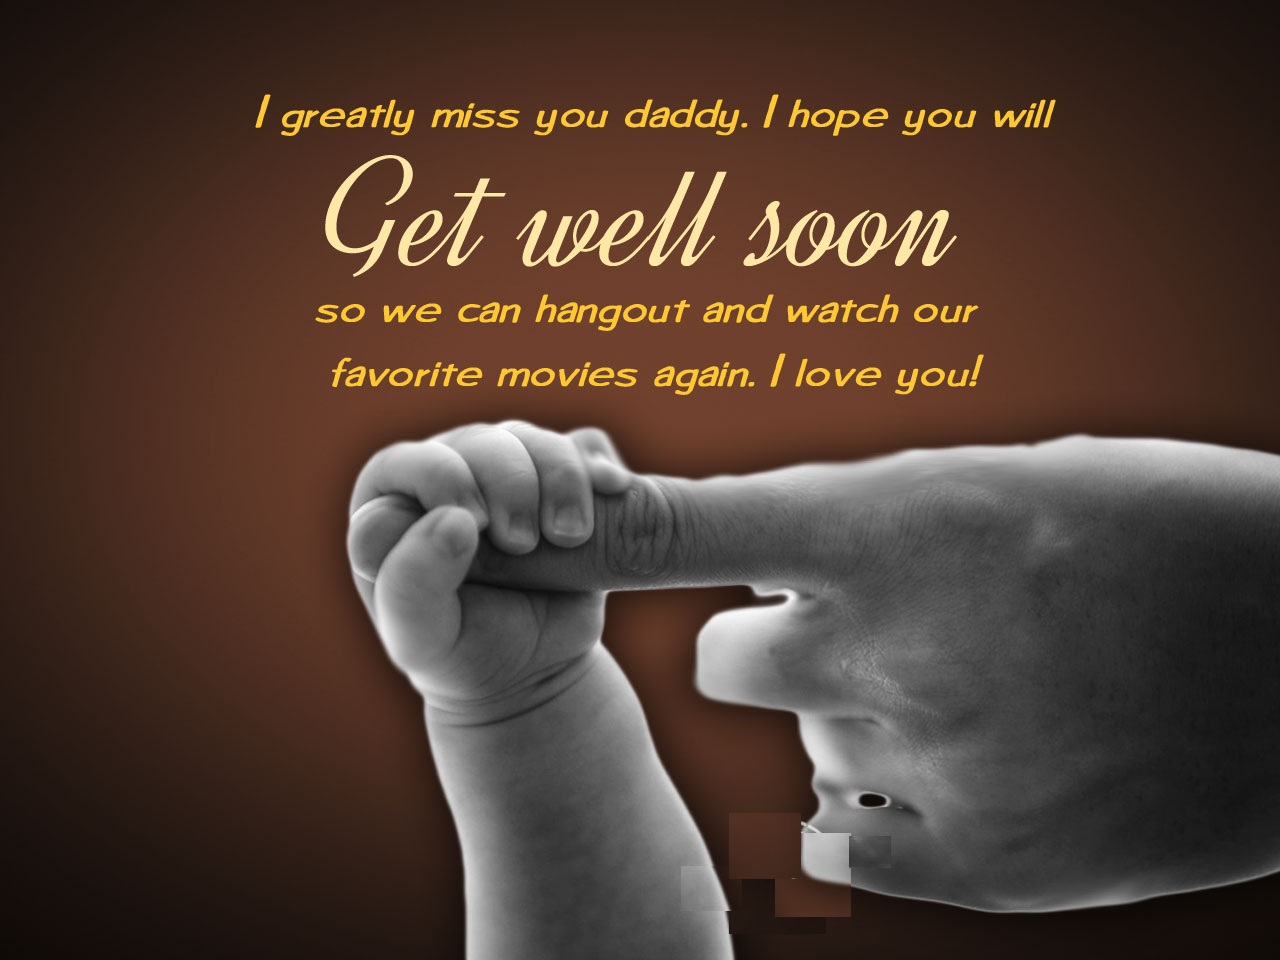 Smart Get Well Soon Daddy Hope You Feel Better Soon Card Hope You Feel Better Soon Friend cards Hope You Feel Better Soon